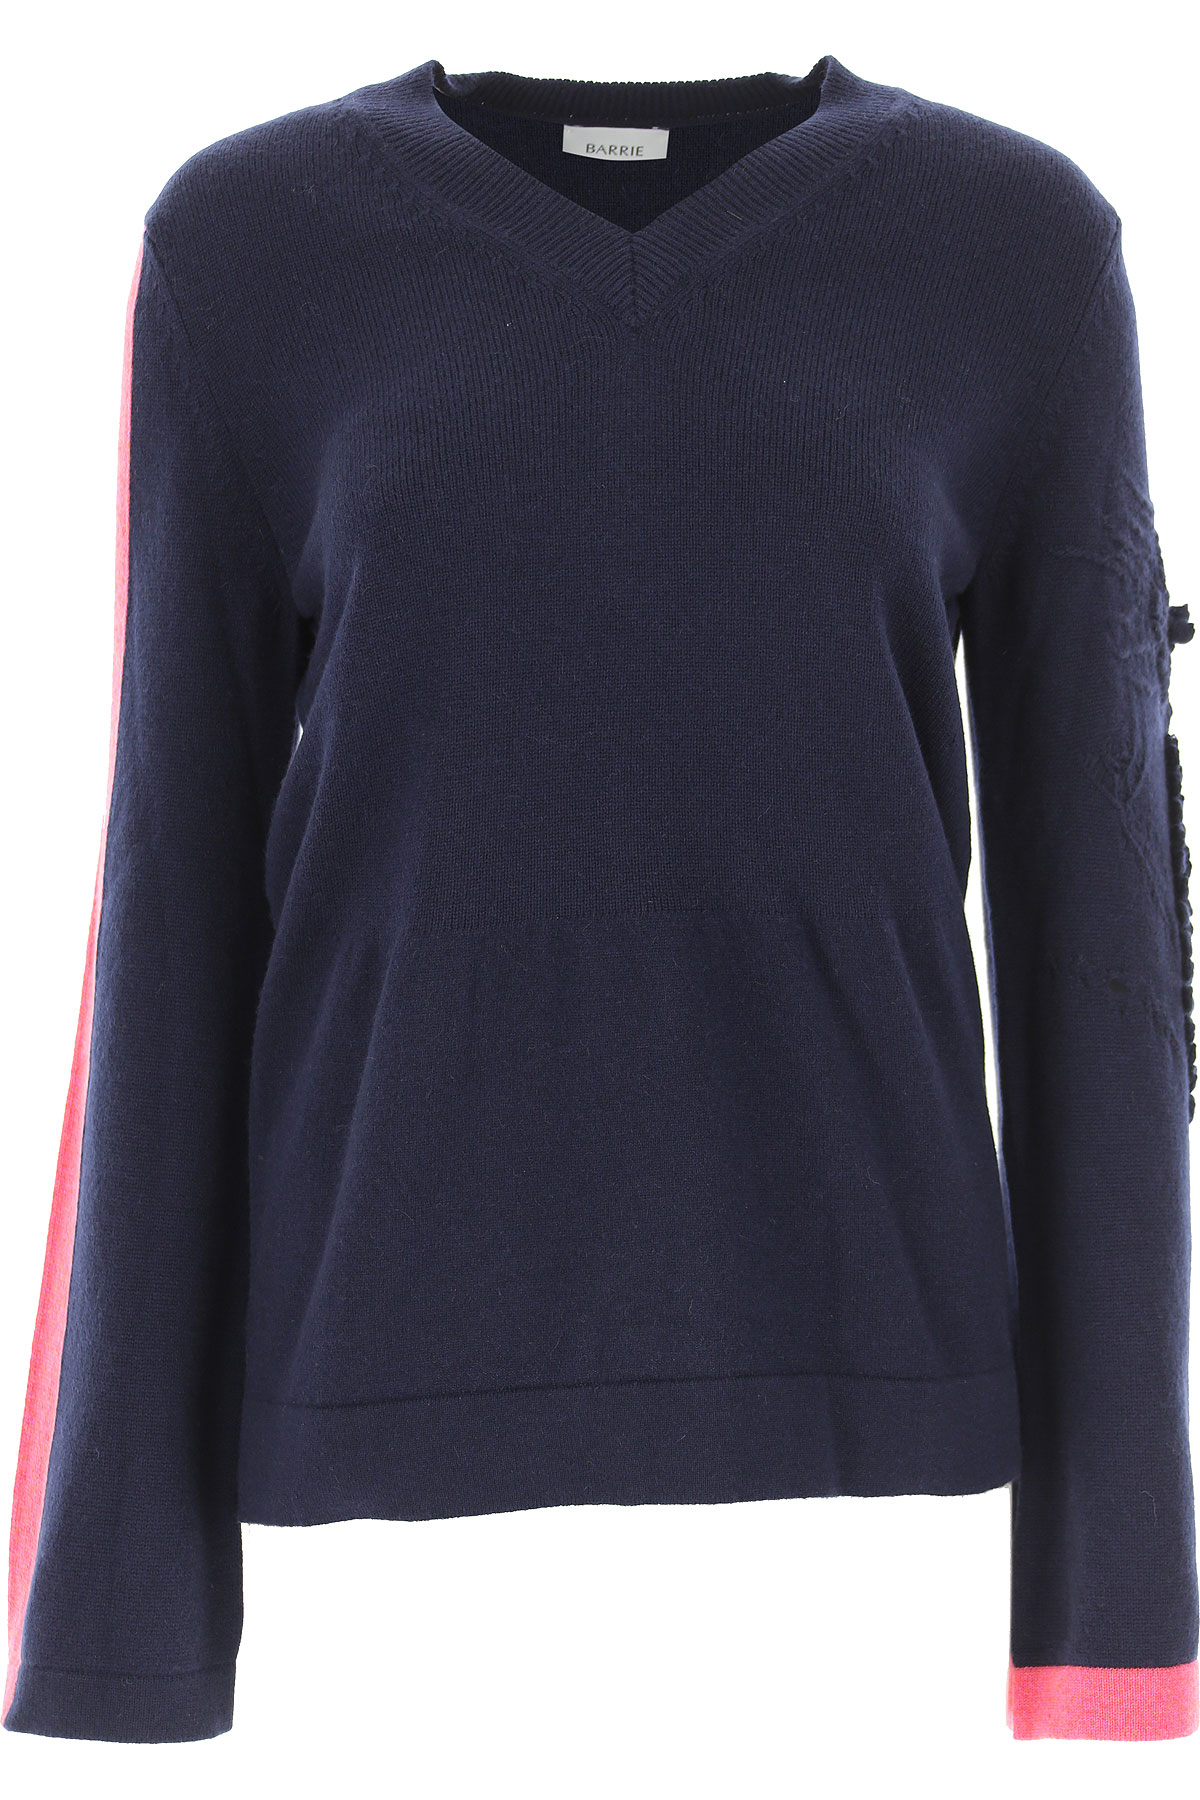 Image of Barrie Sweater for Women Jumper, Black, Cashemere, 2017, 2 4 6